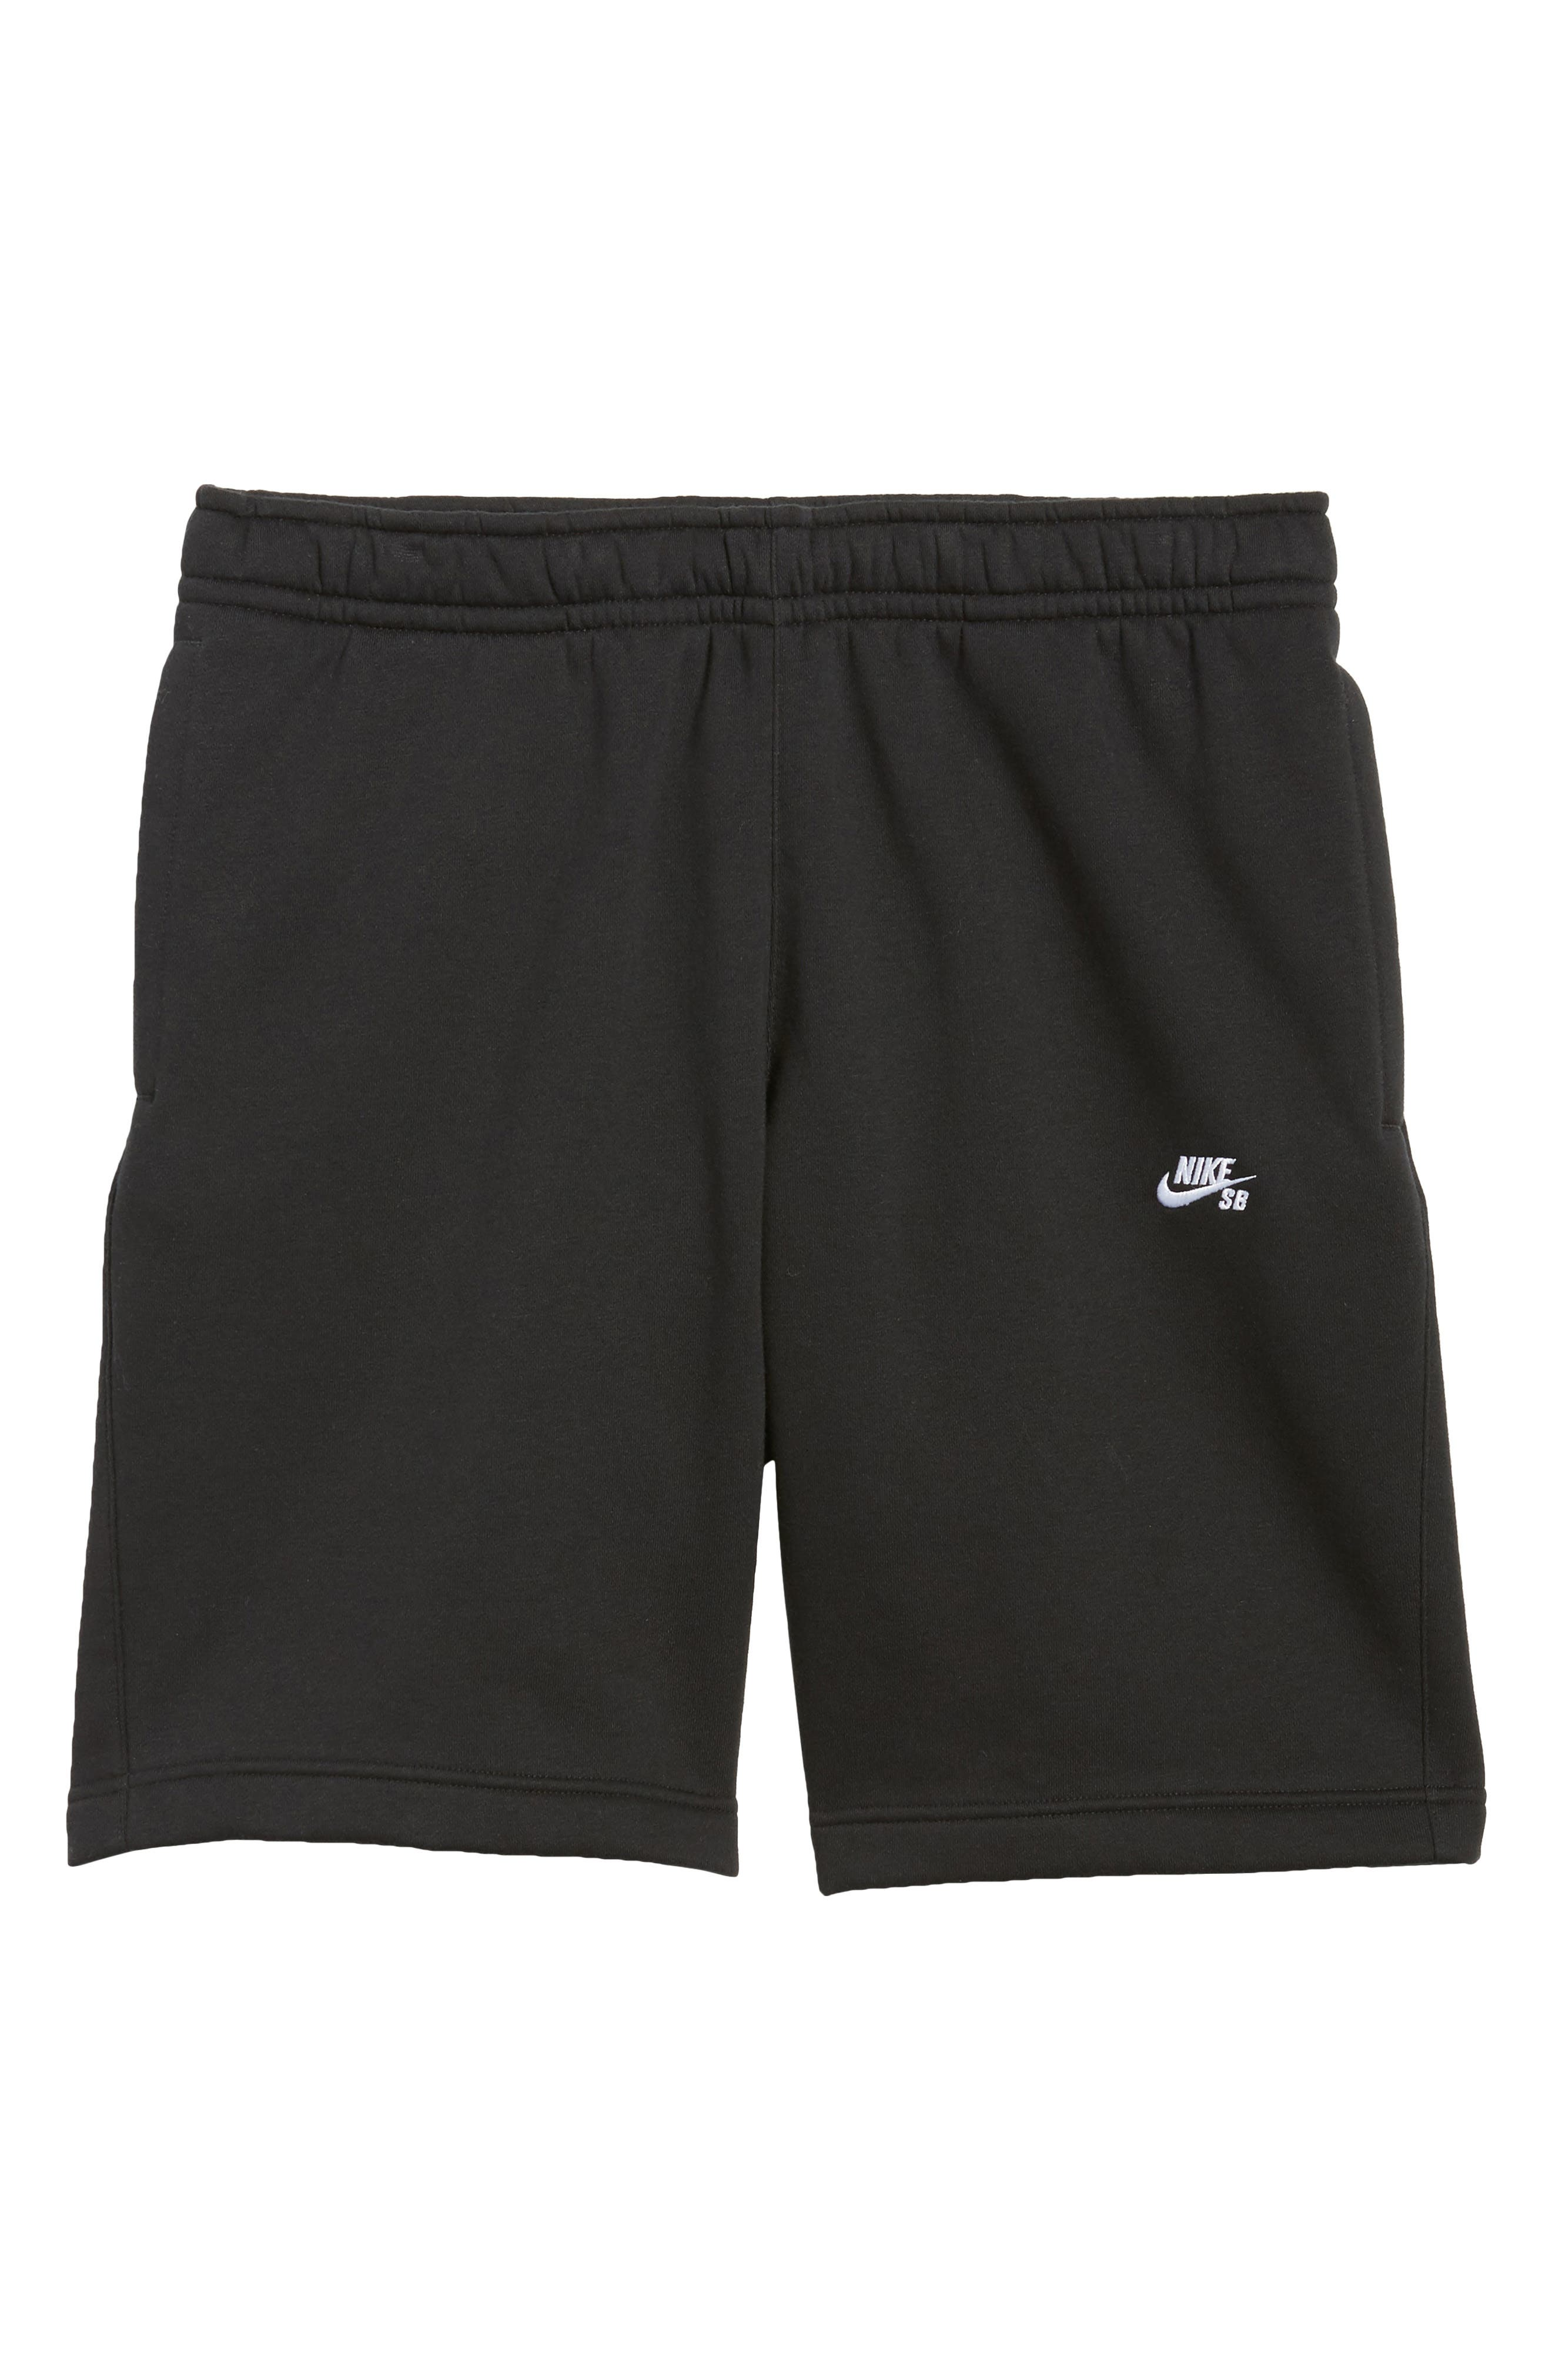 Fleece Shorts,                             Alternate thumbnail 6, color,                             Black/ White